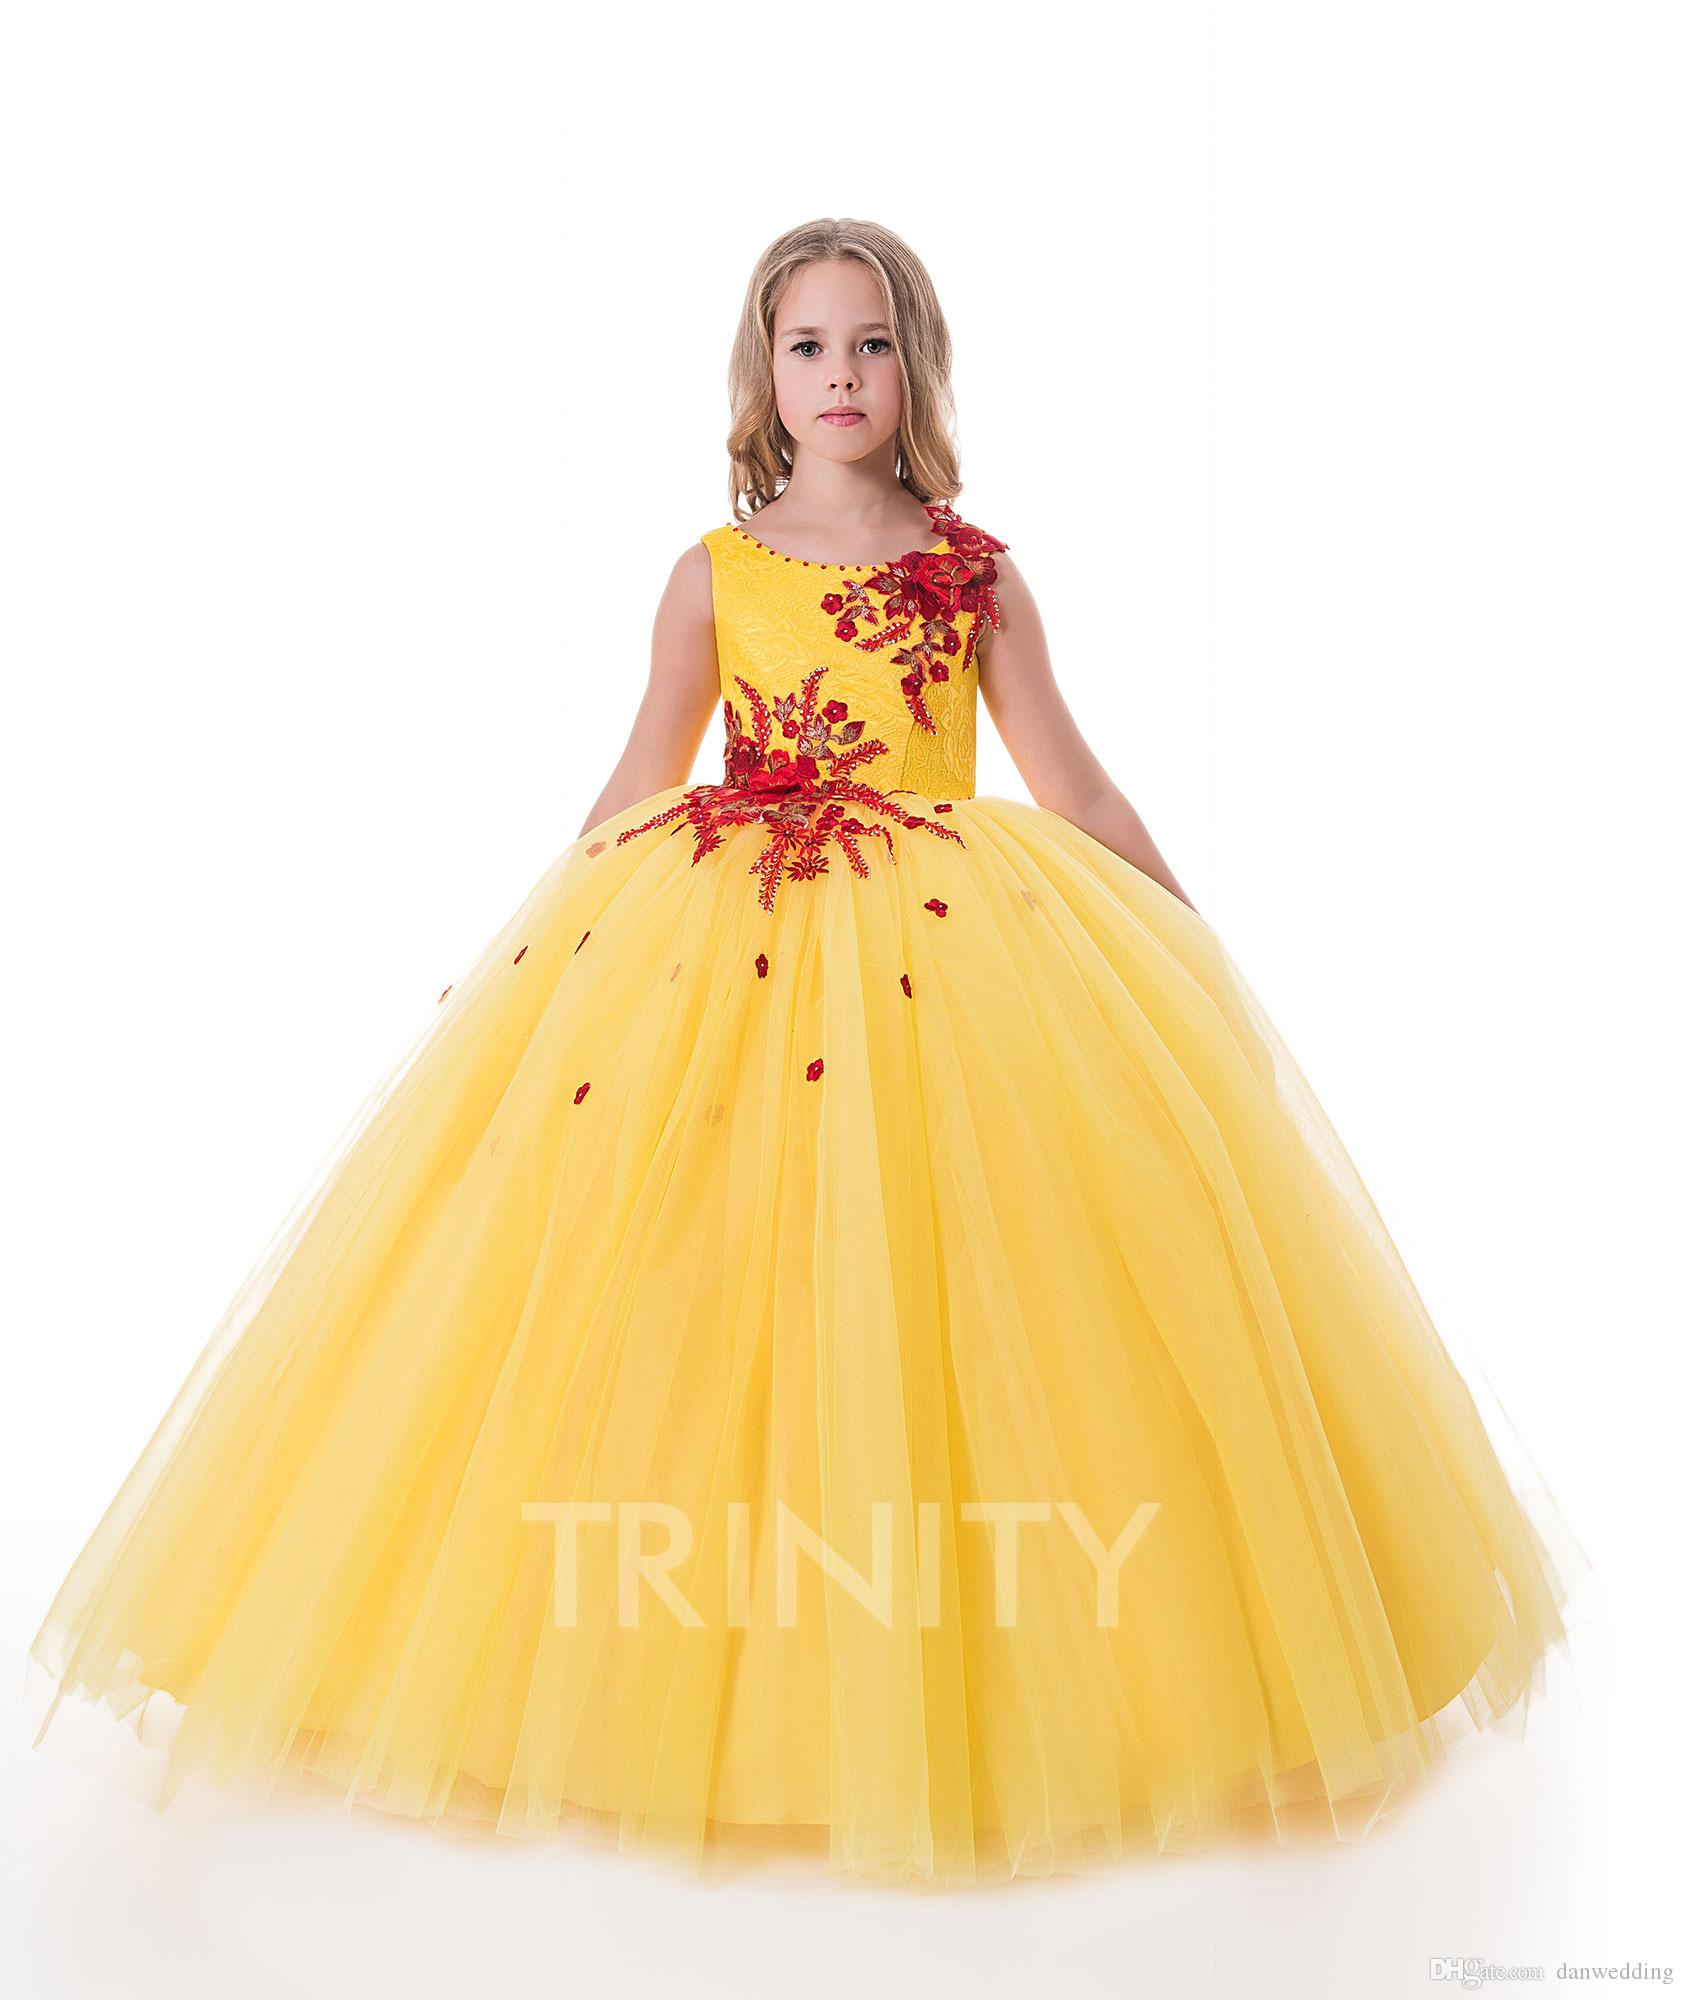 e9721d76c Bright Yellow Red Embroidery Girl's Pageant Dresses Flower Girl Dresses  Holidays/Birthday Skirt Princess Skirt Custom Size 2-14 F110141